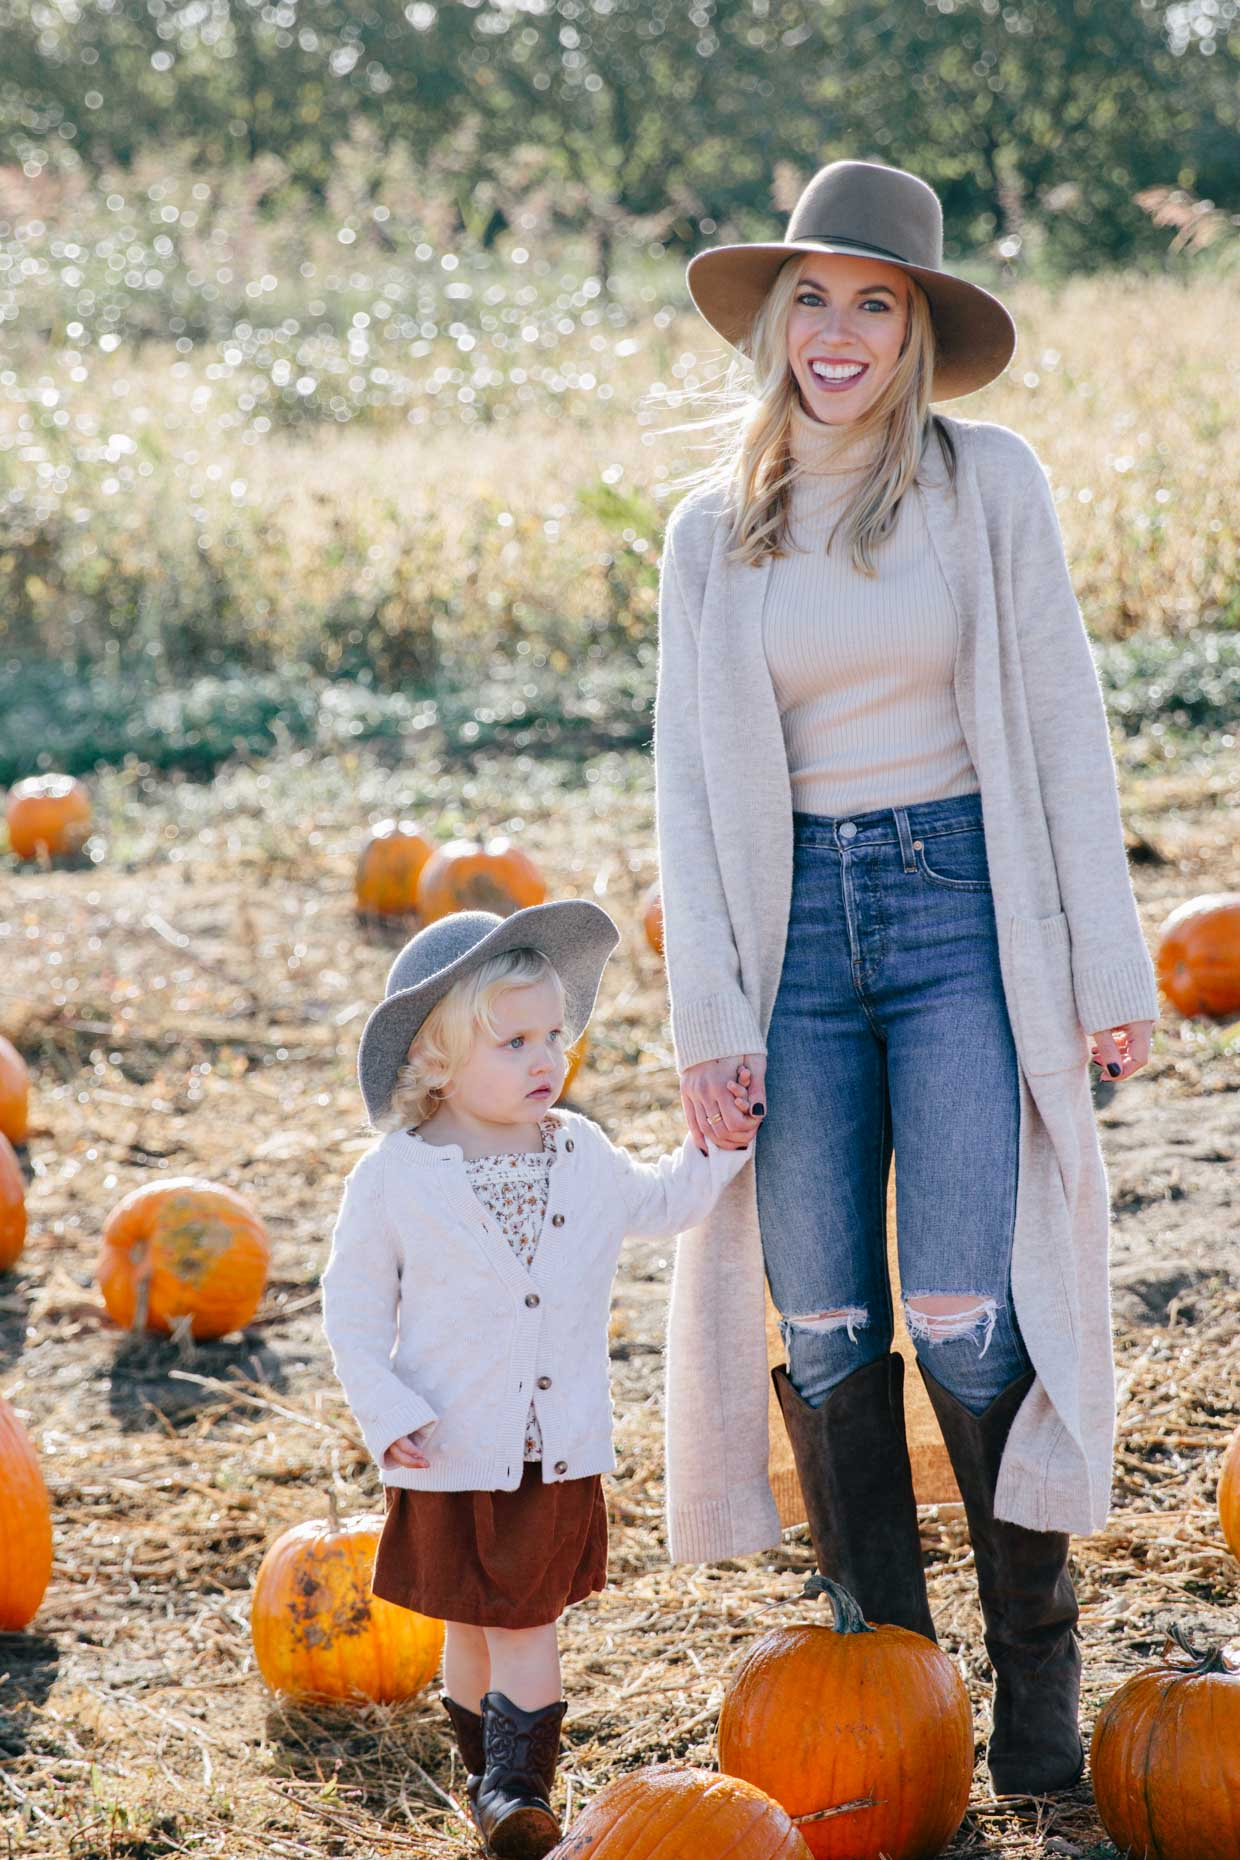 Meagan Brandon fashion blogger of Meagan's Moda wears Zara long beige cardigan with beige turtleneck and skinny jeans at pumpkin patch